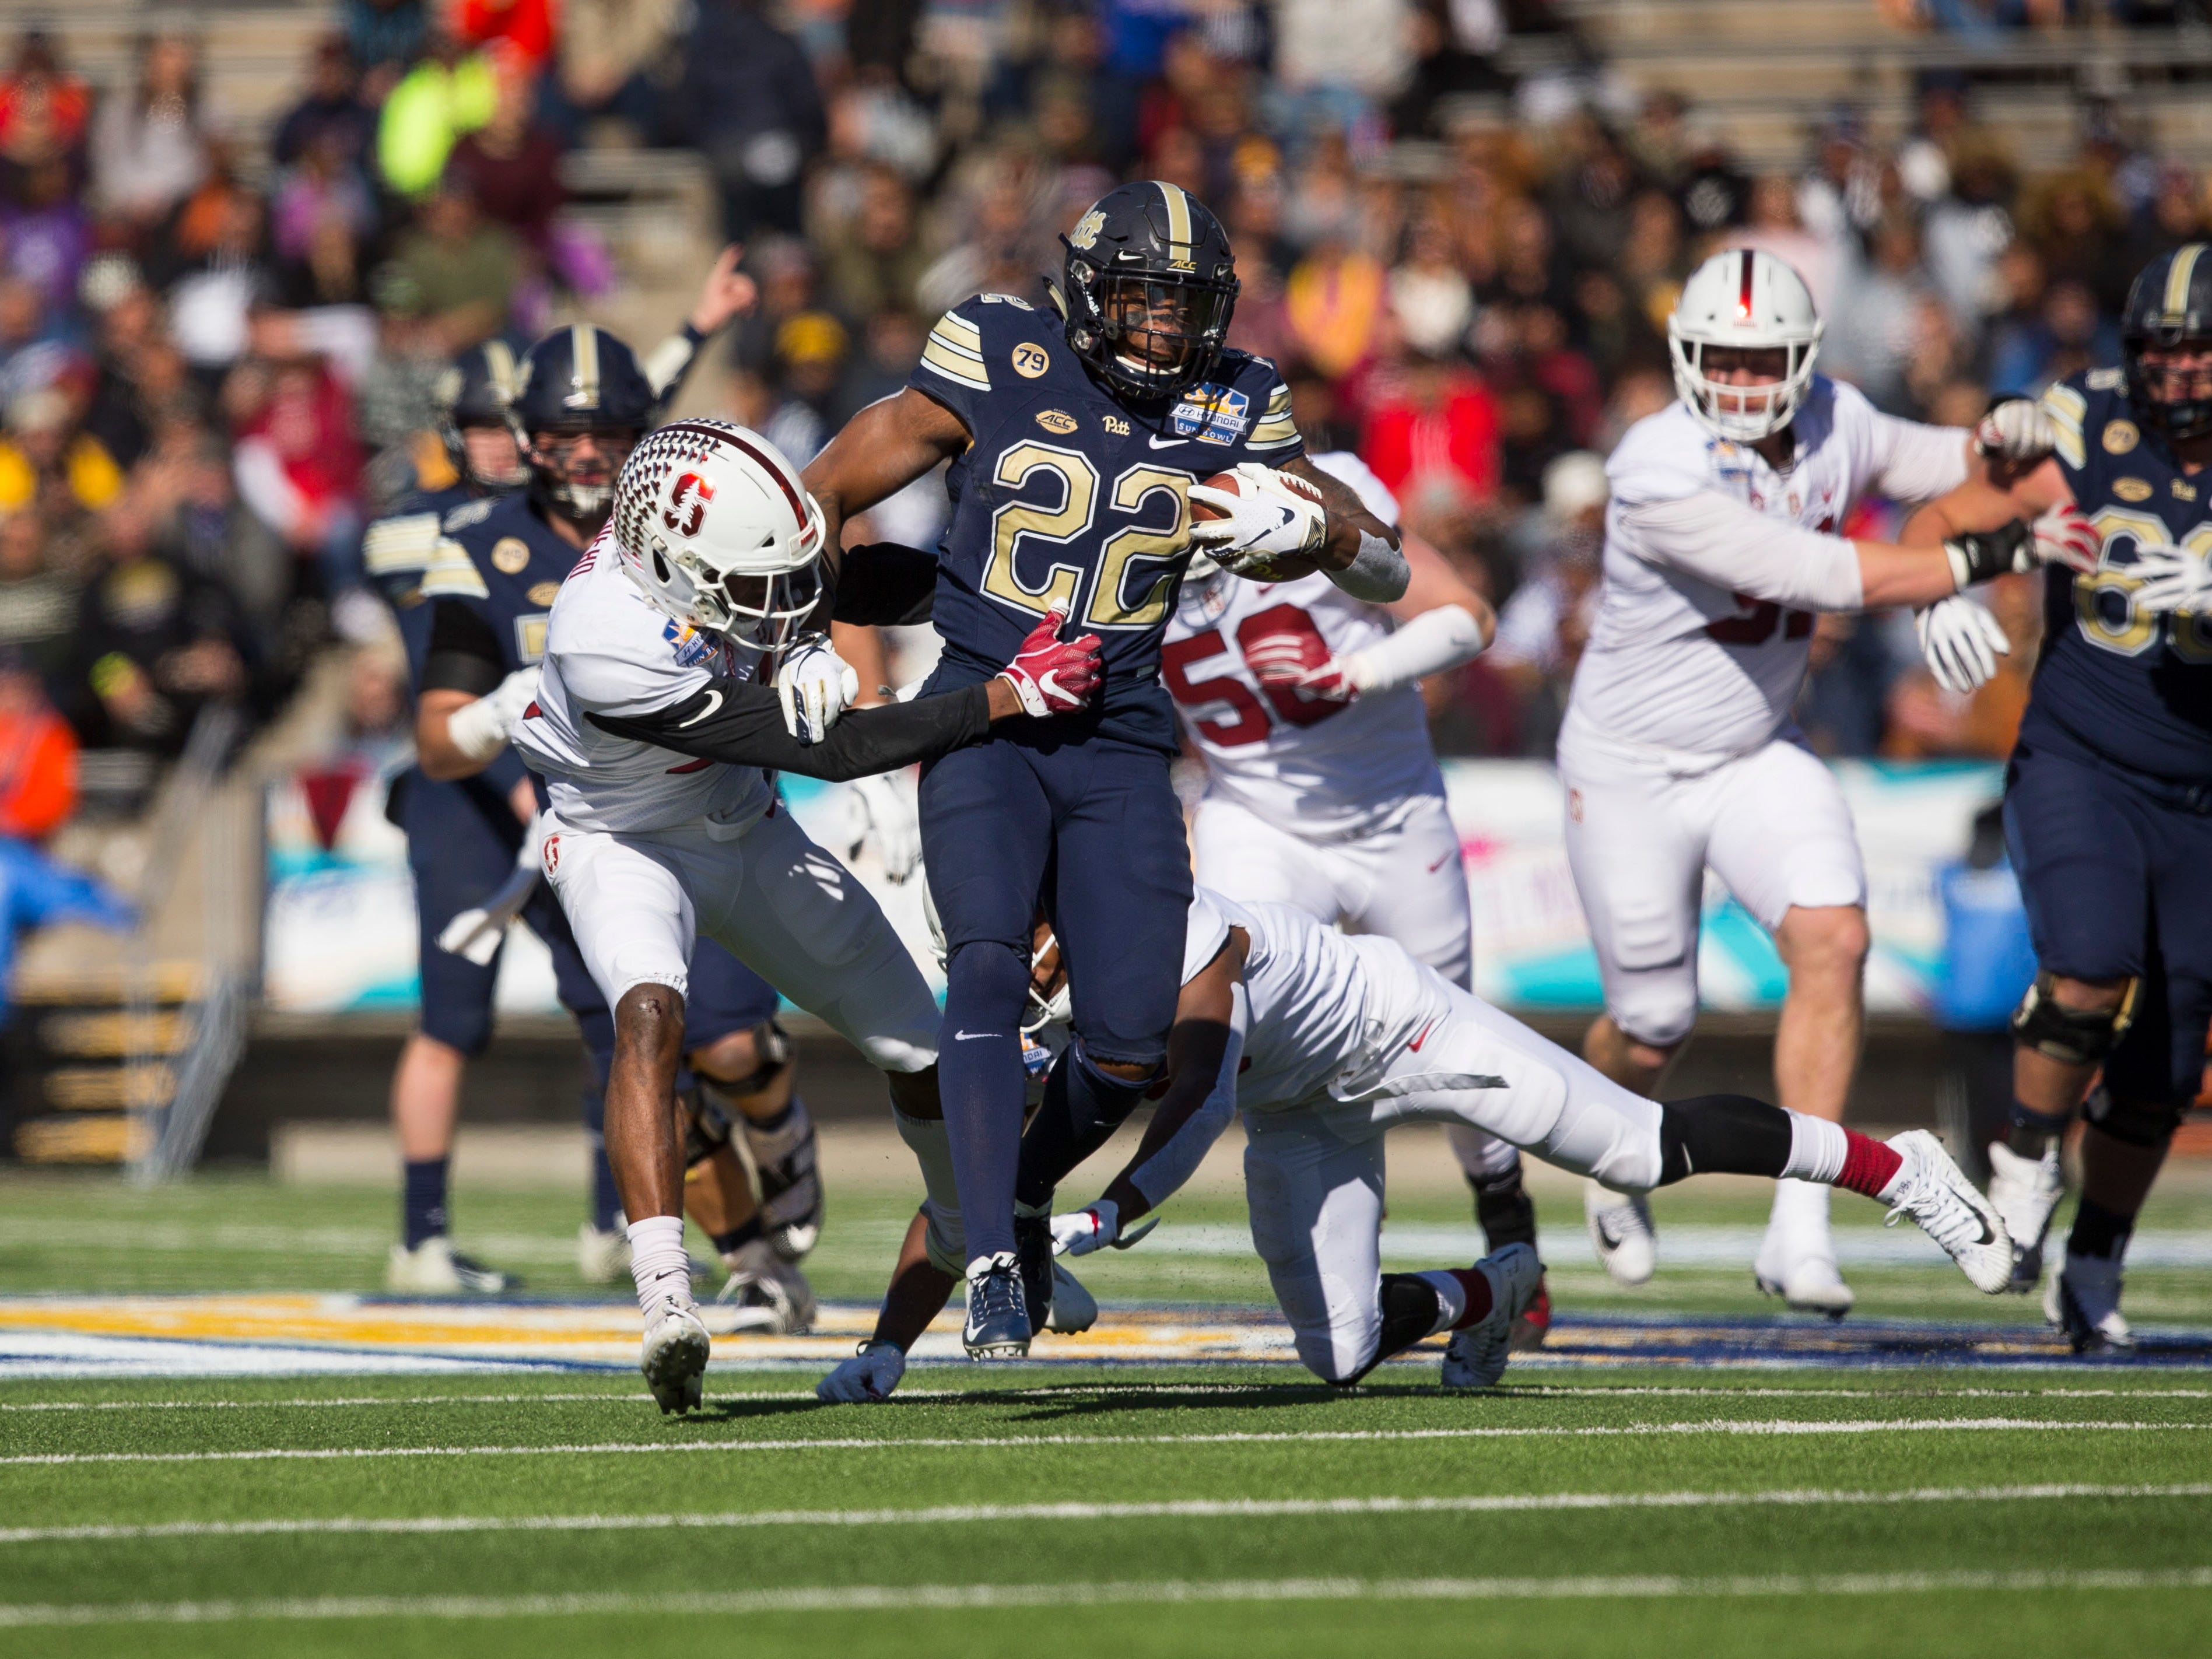 Pittsburgh running back Darrin Hall carries the ball against Stanford during the first half of the 2018 Sun Bowl.